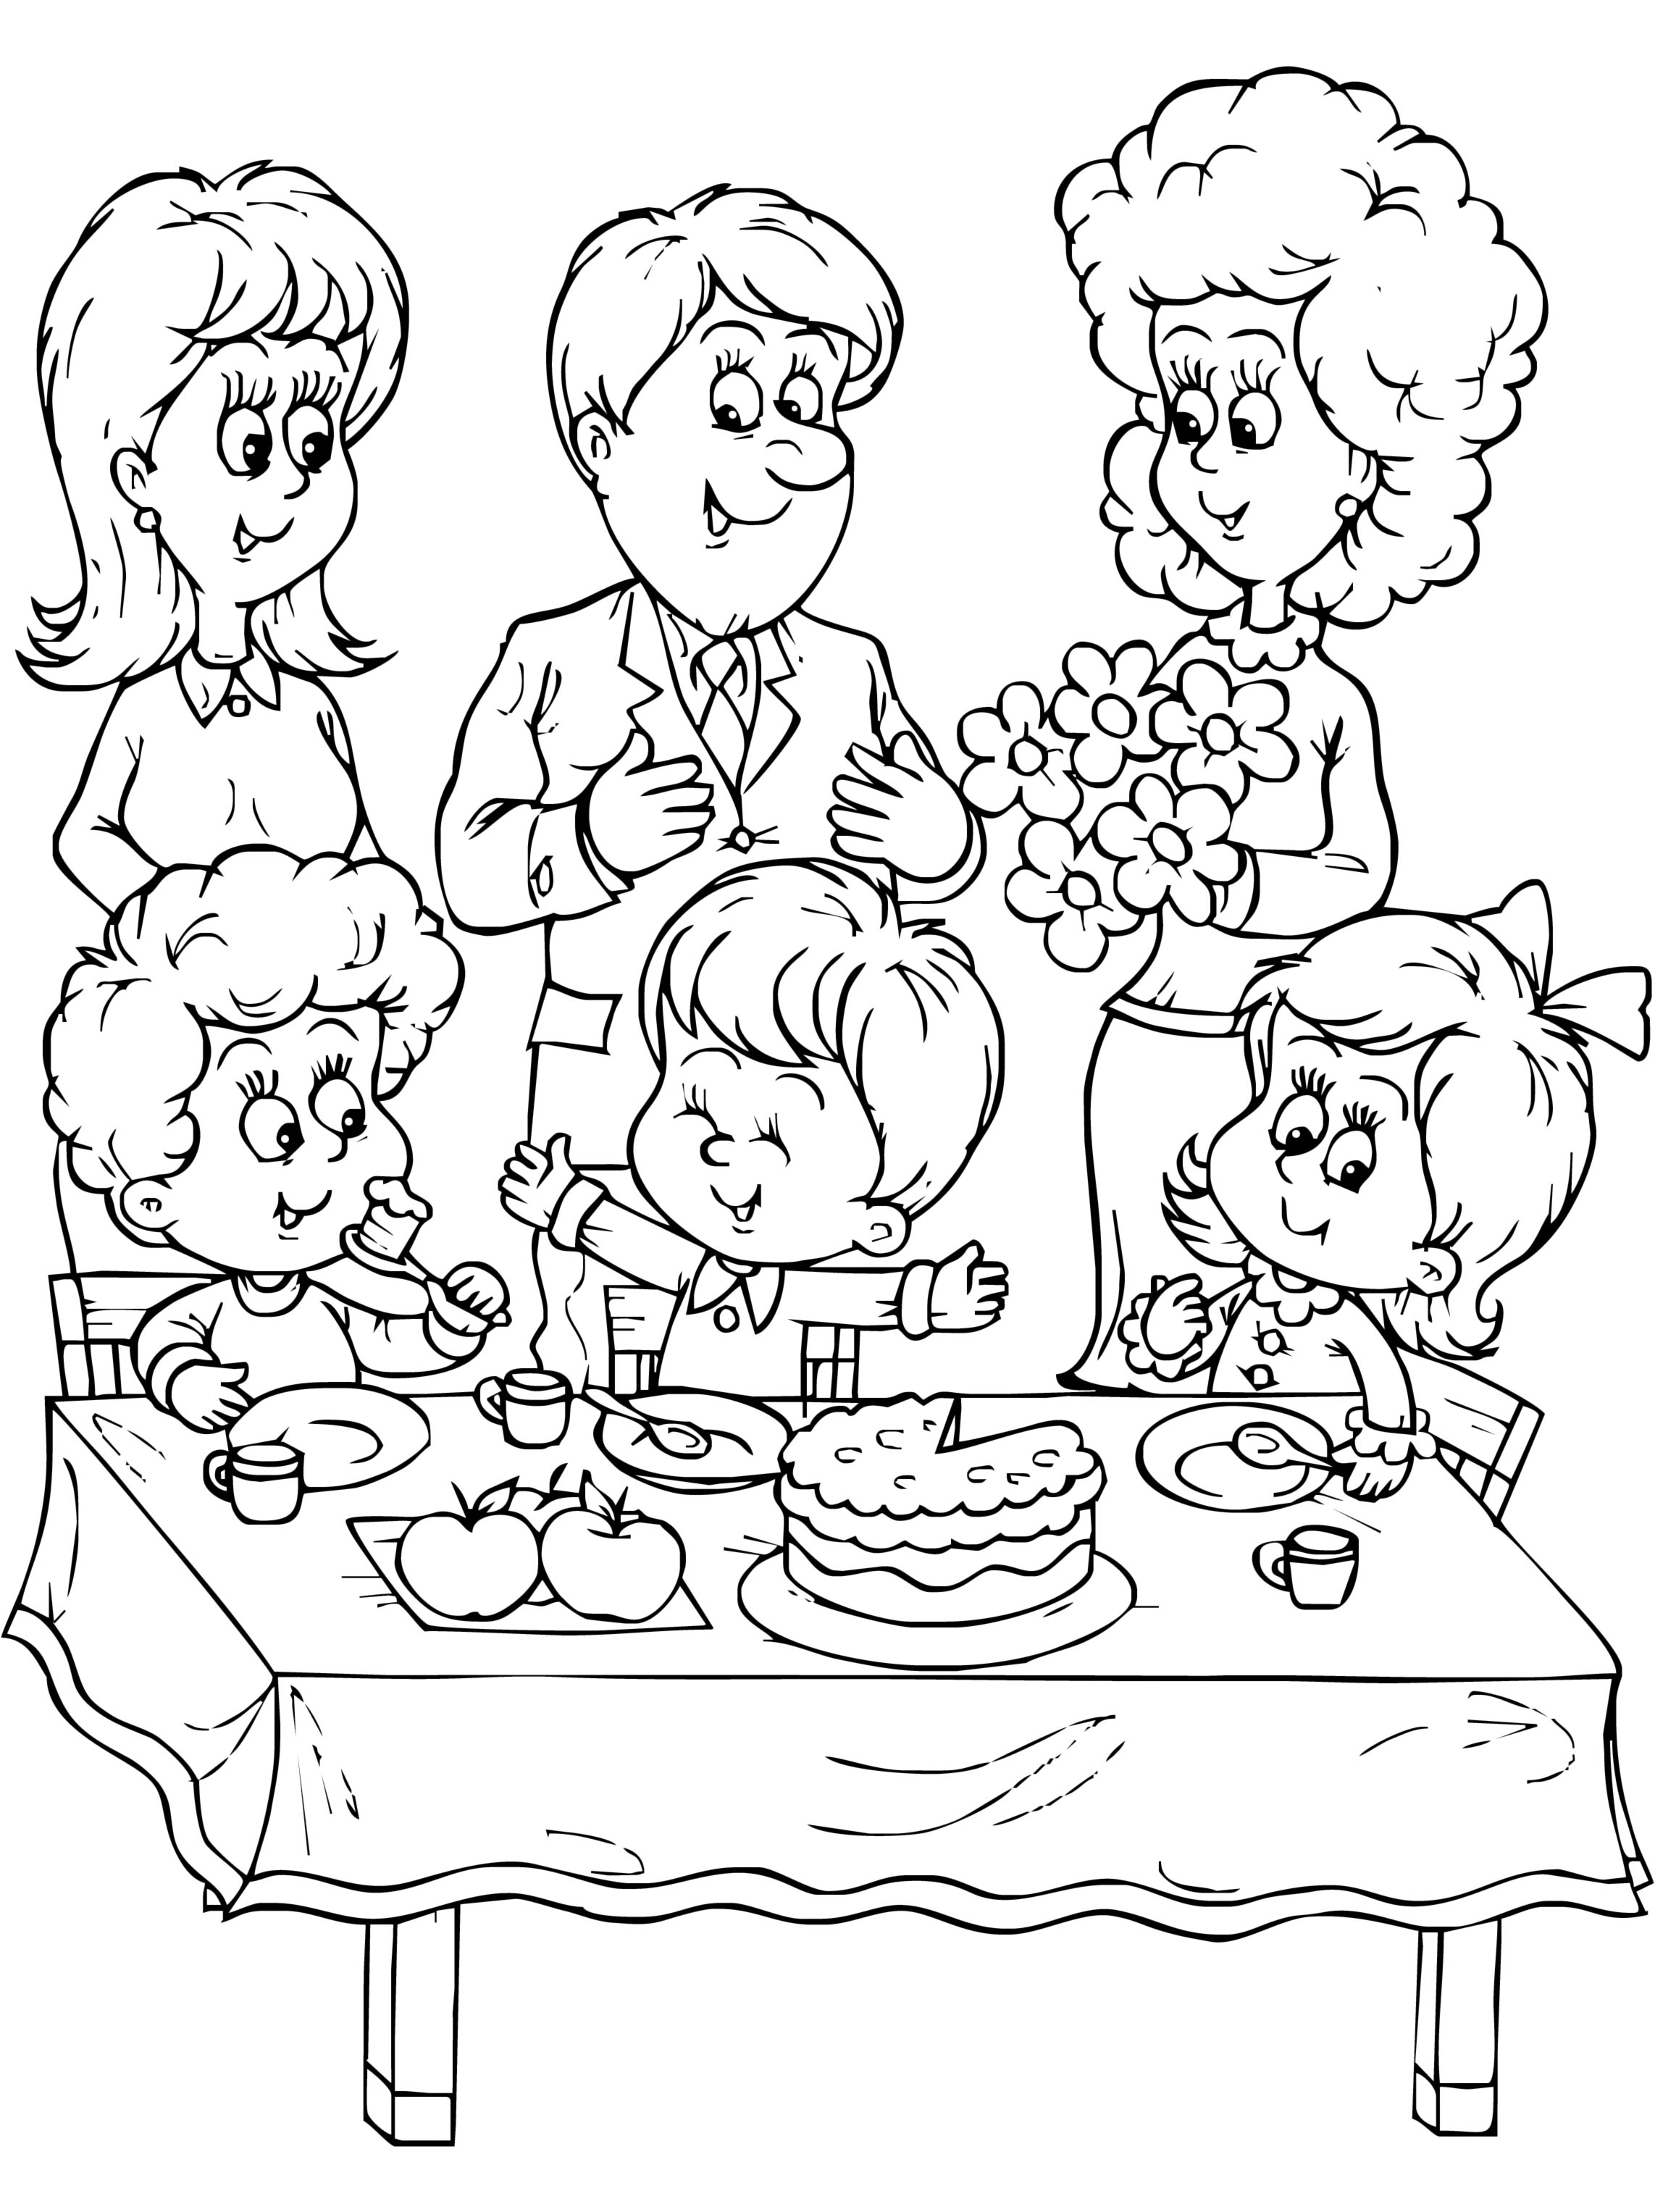 my birthday party drawing ; me-and-my-family-drawing-12